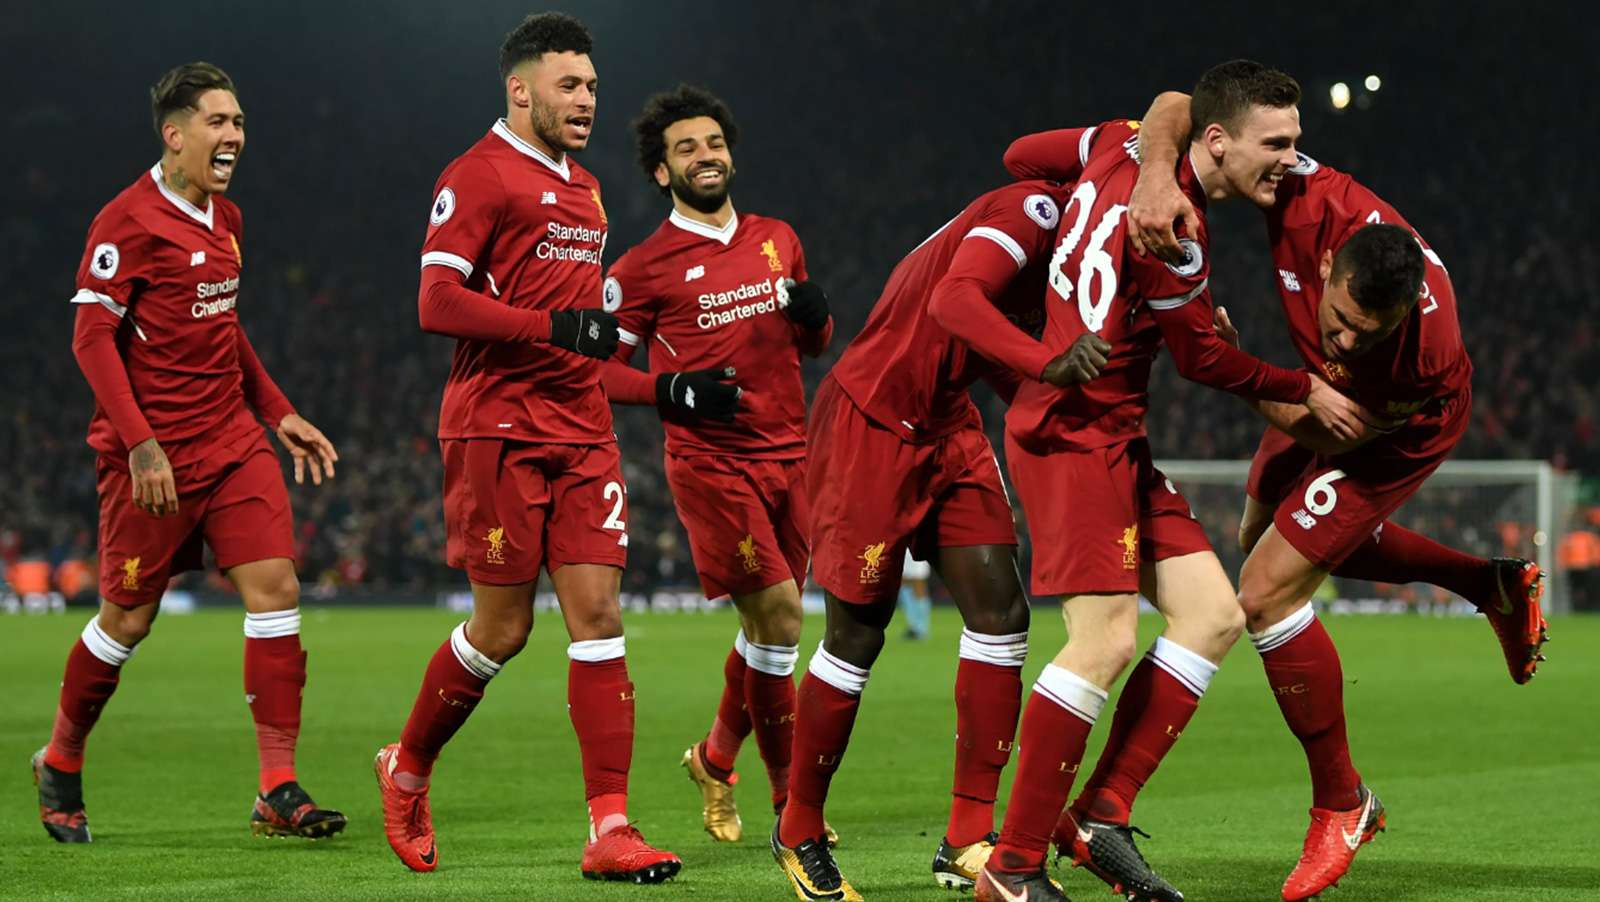 EPL Wk 13 Review: Chelsea lose unbeaten run to Spurs; City and Liverpool win